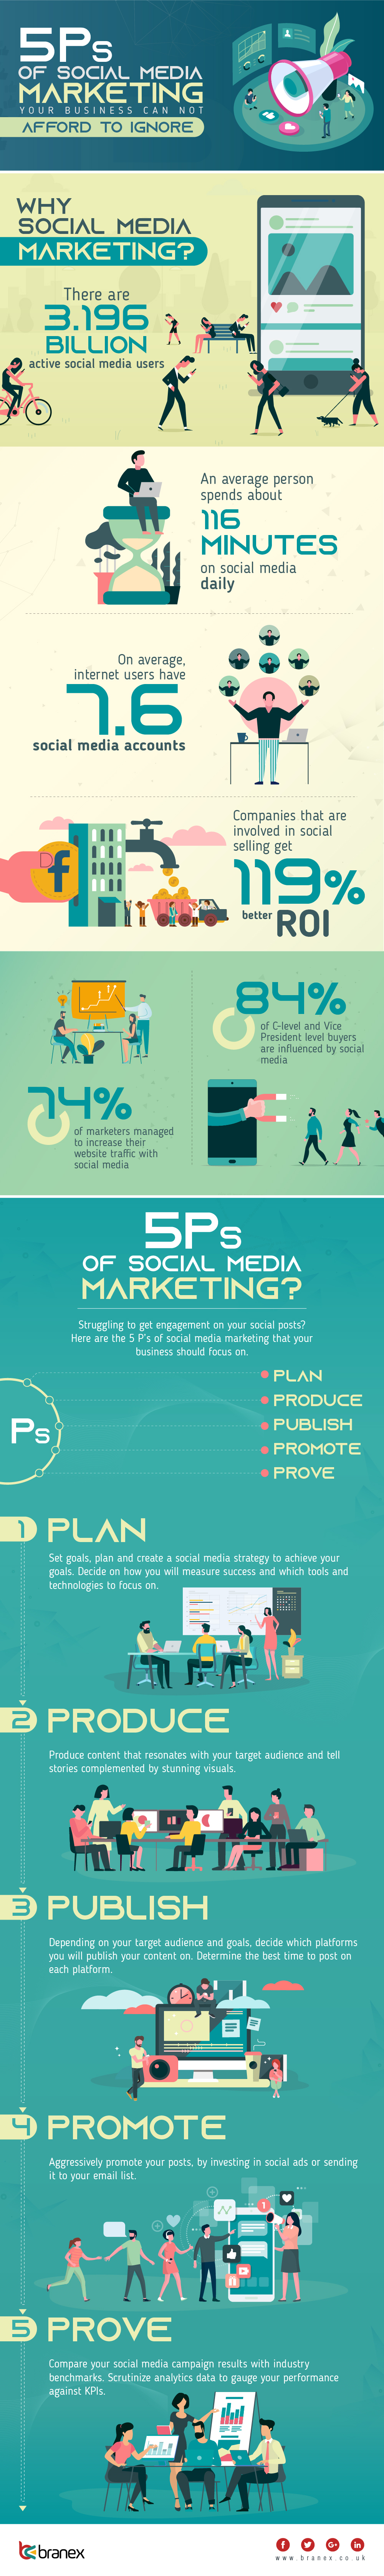 Infographic outlines the '5 P's' approach to social media marketing